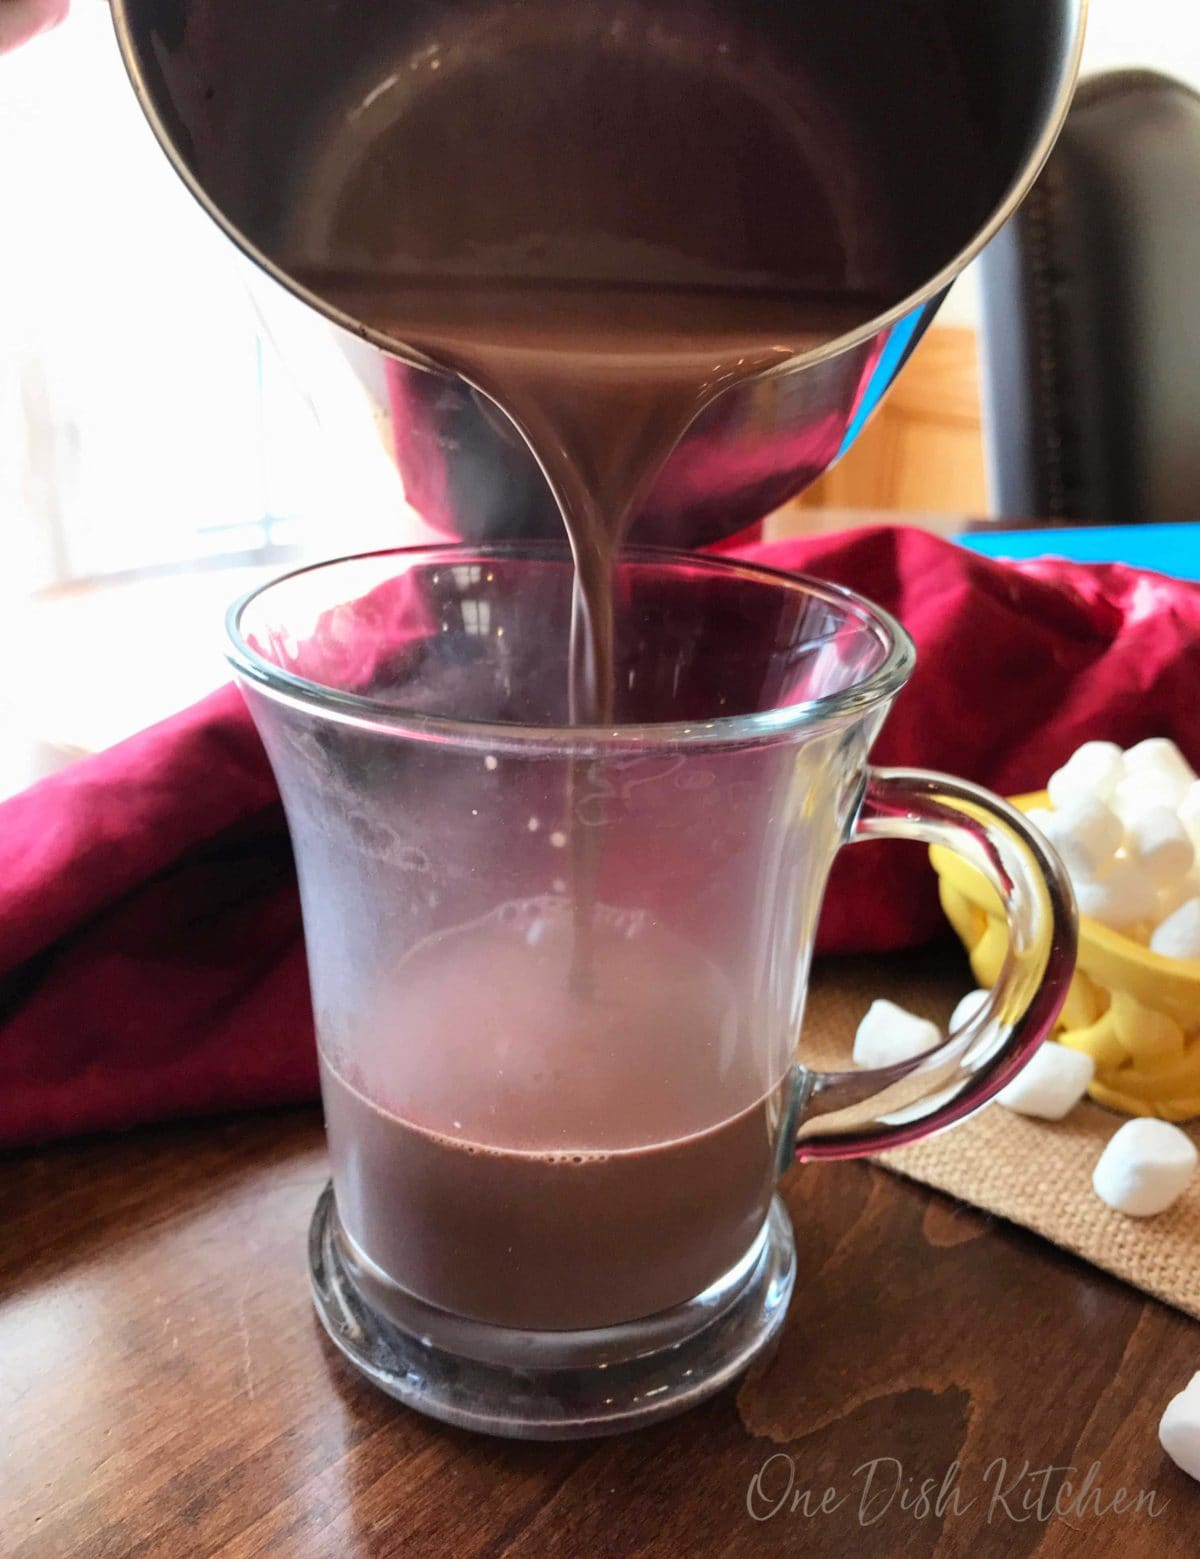 Pouring hot chocolate from a pot and into a mug with a small bowl of mini marshmallows in the background